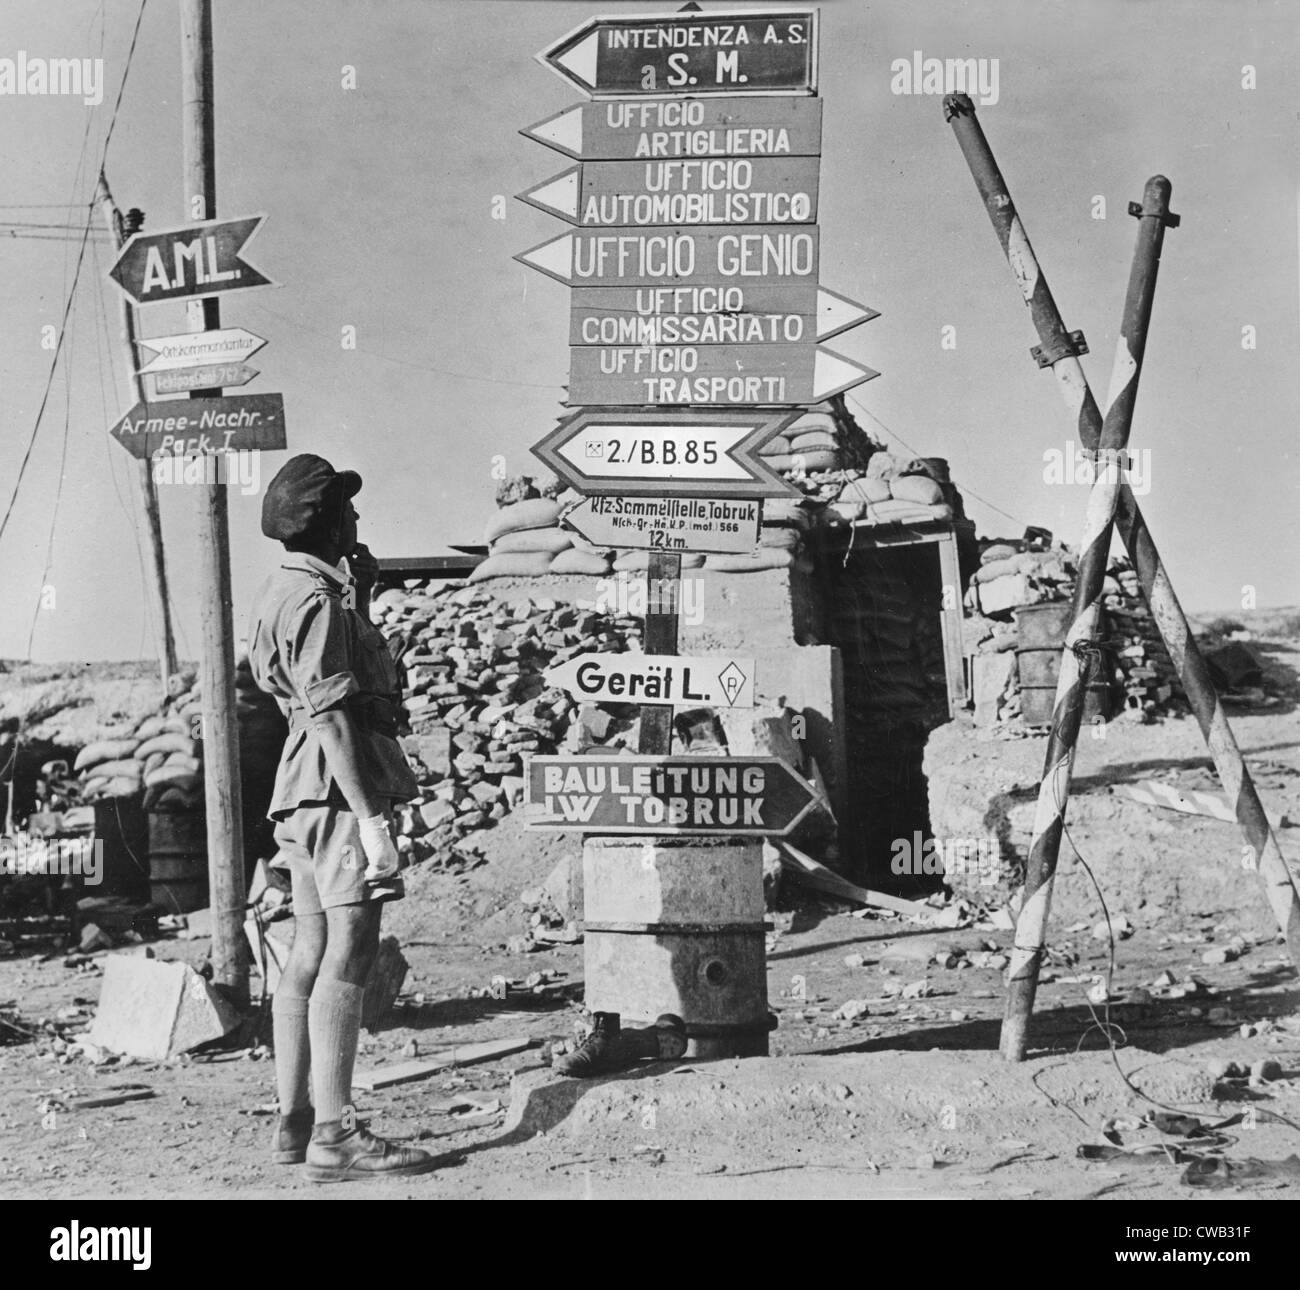 Image result for ww2 north africa signpost